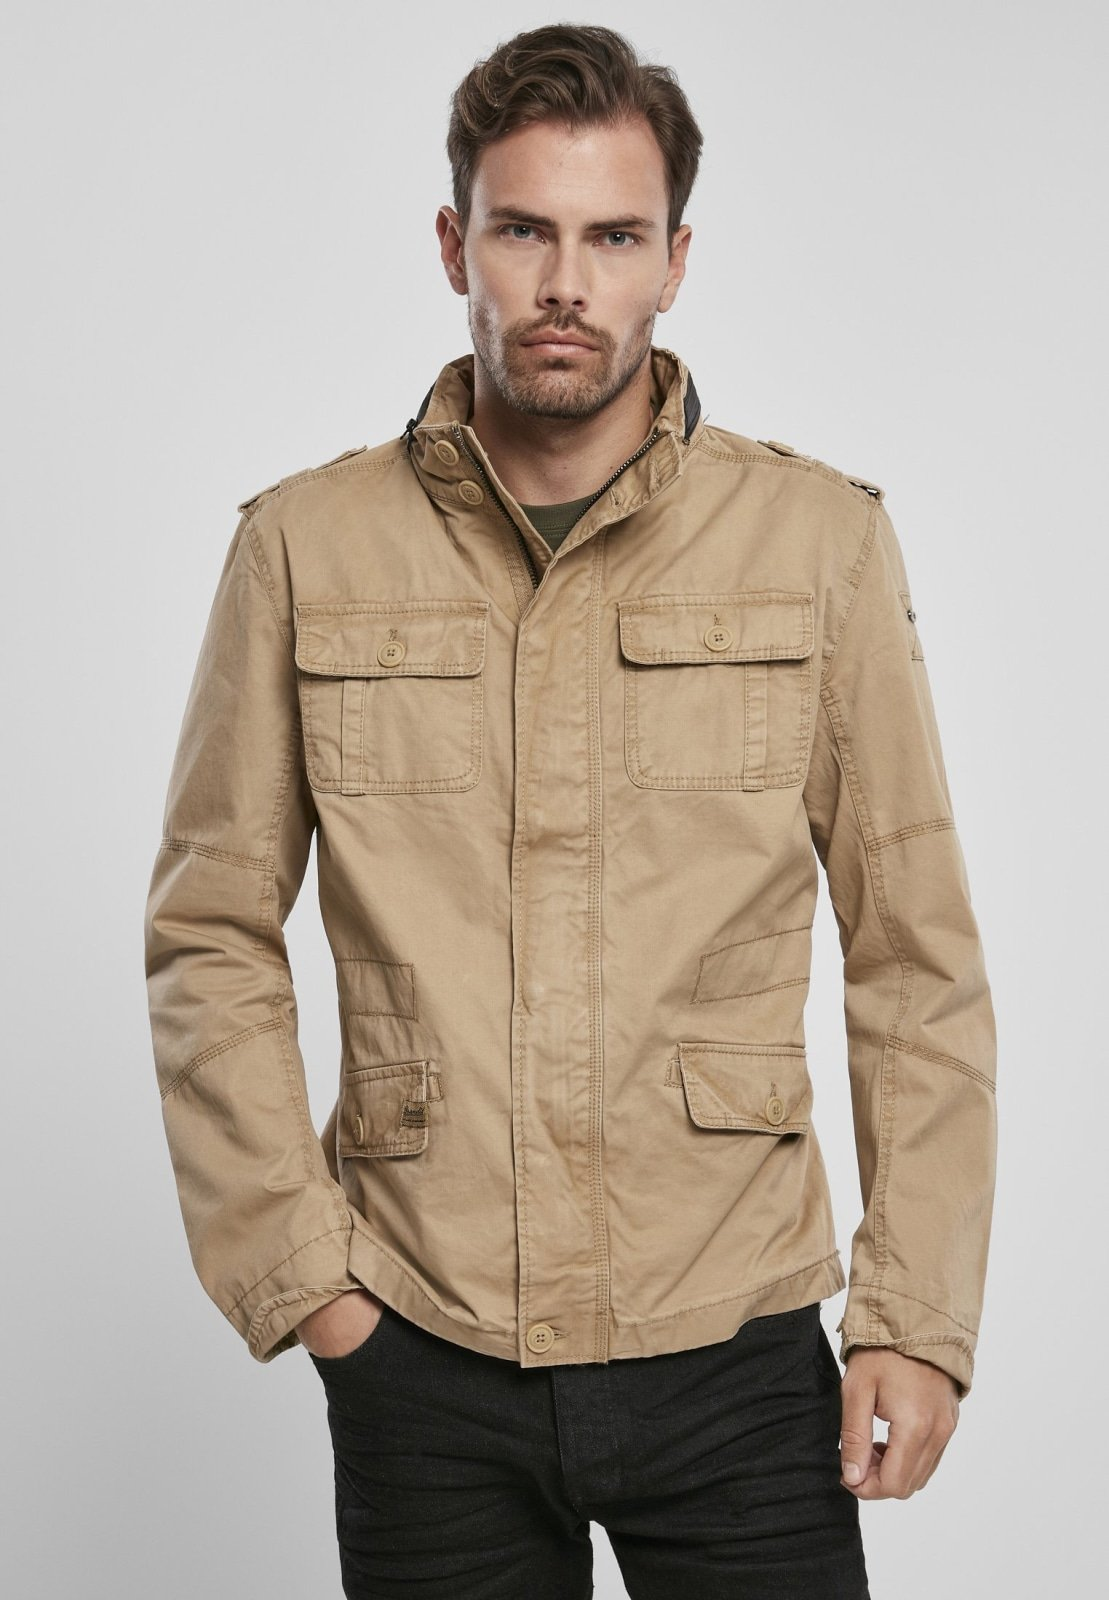 Britannia Jacket (6 Colors | Size S-5xl) Camel / s Jacket Light Brandit